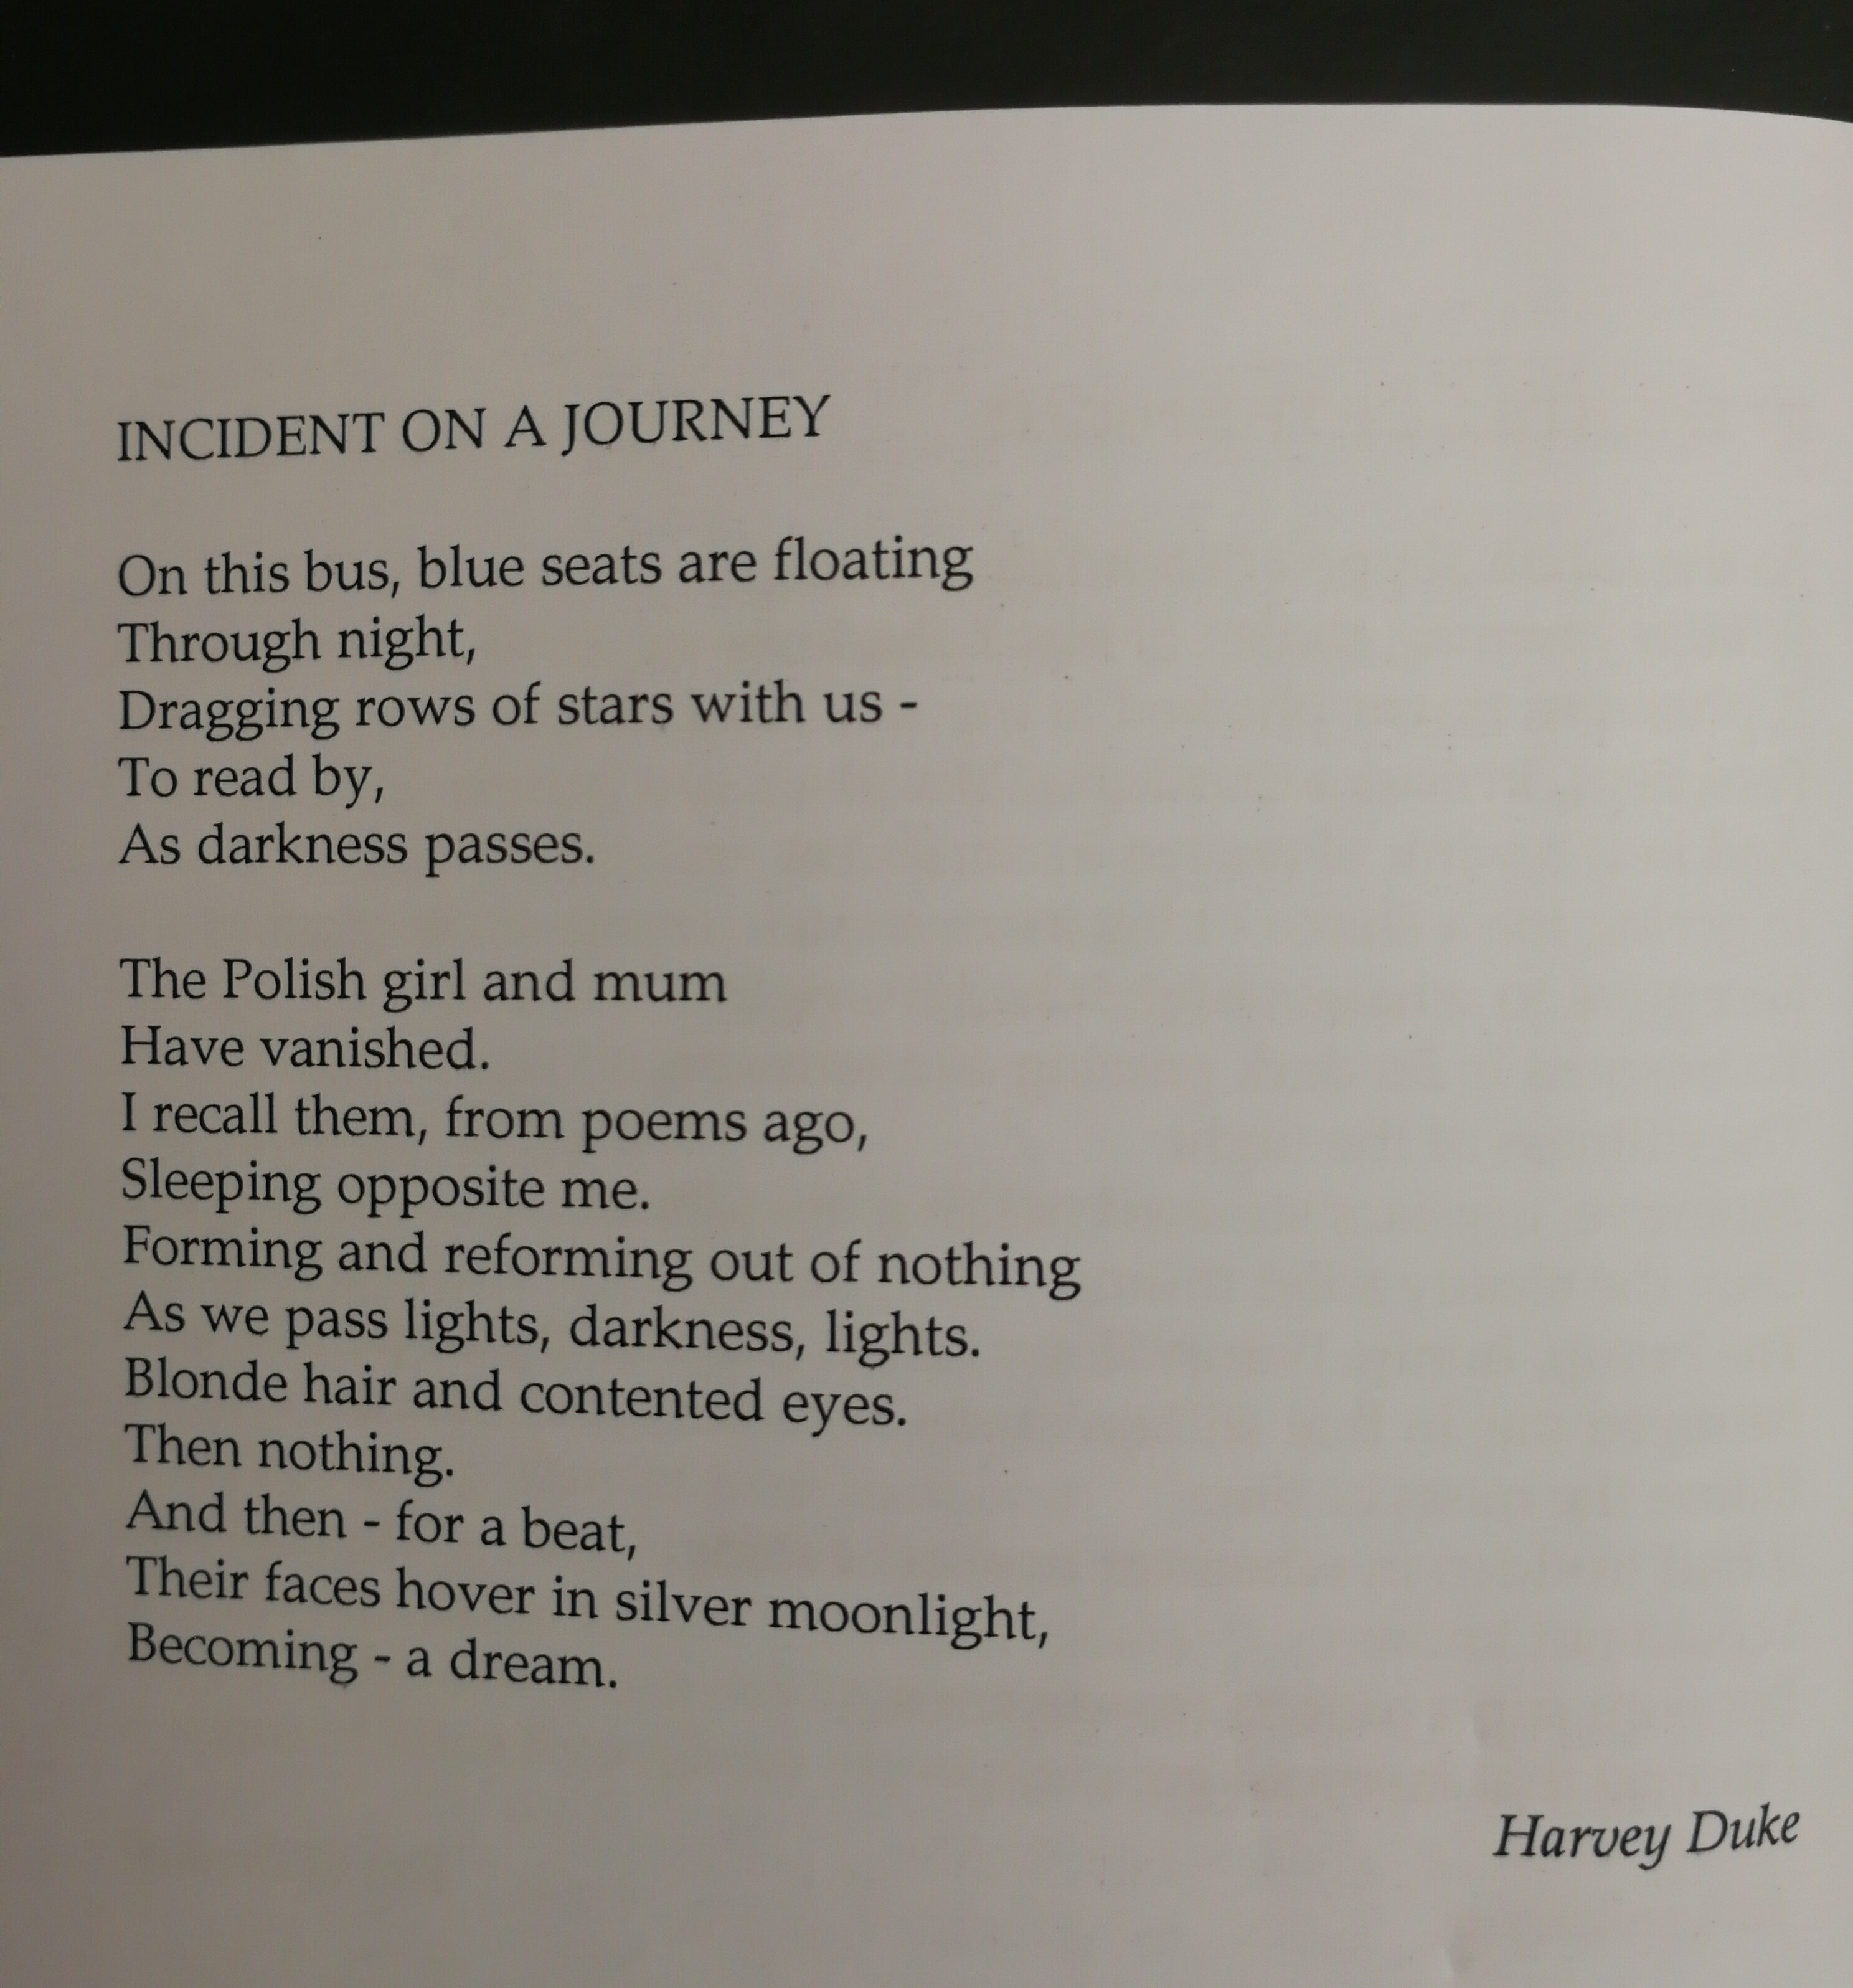 Incident on a journey, 2009.jpg